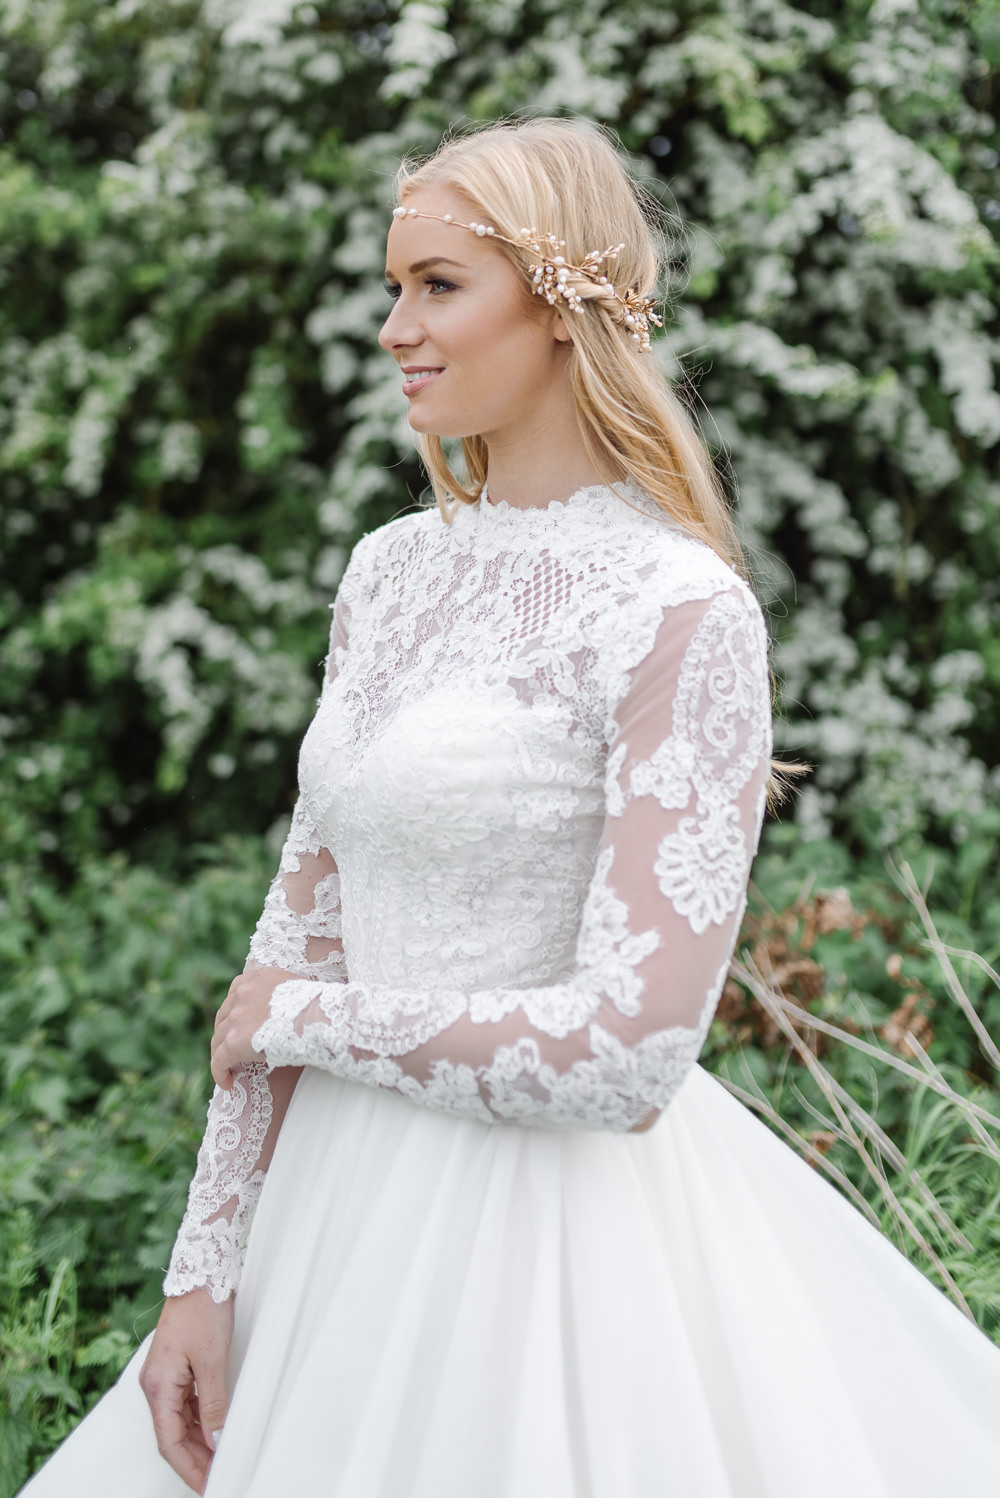 Lace Dress Gown Bride Bridal Sleeves Skirt Train Grey Violet Wedding Ideas Chloe Ely Photography